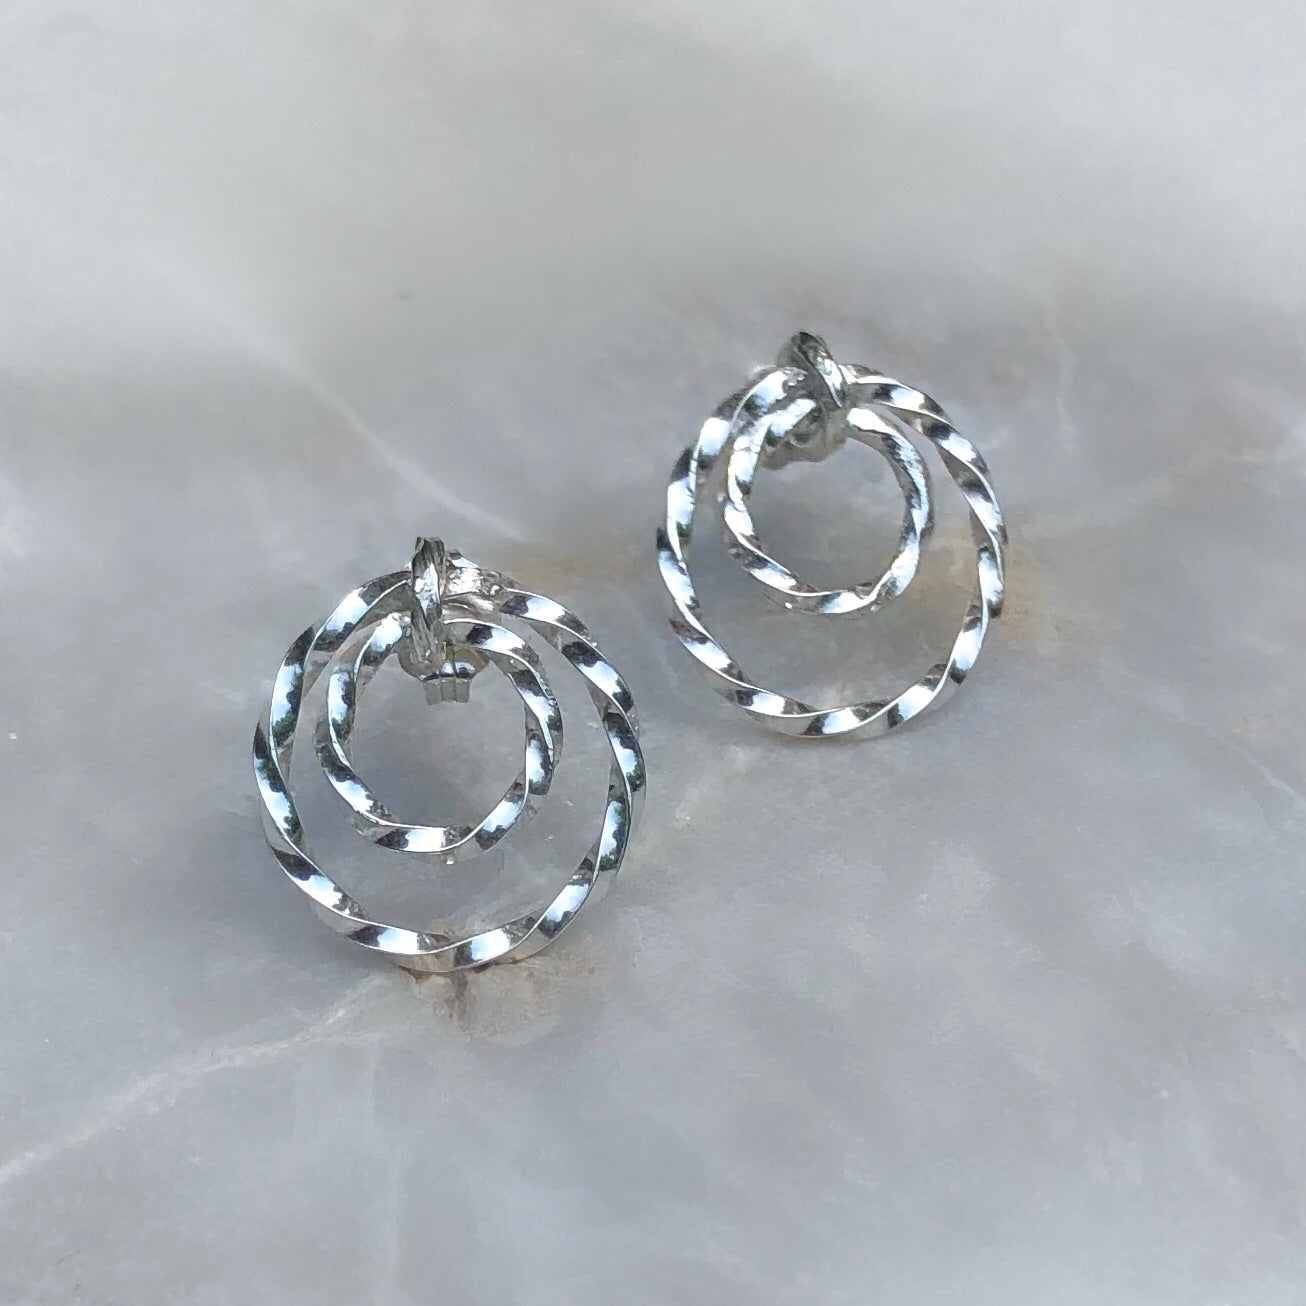 Loyalty Earrings - Silver